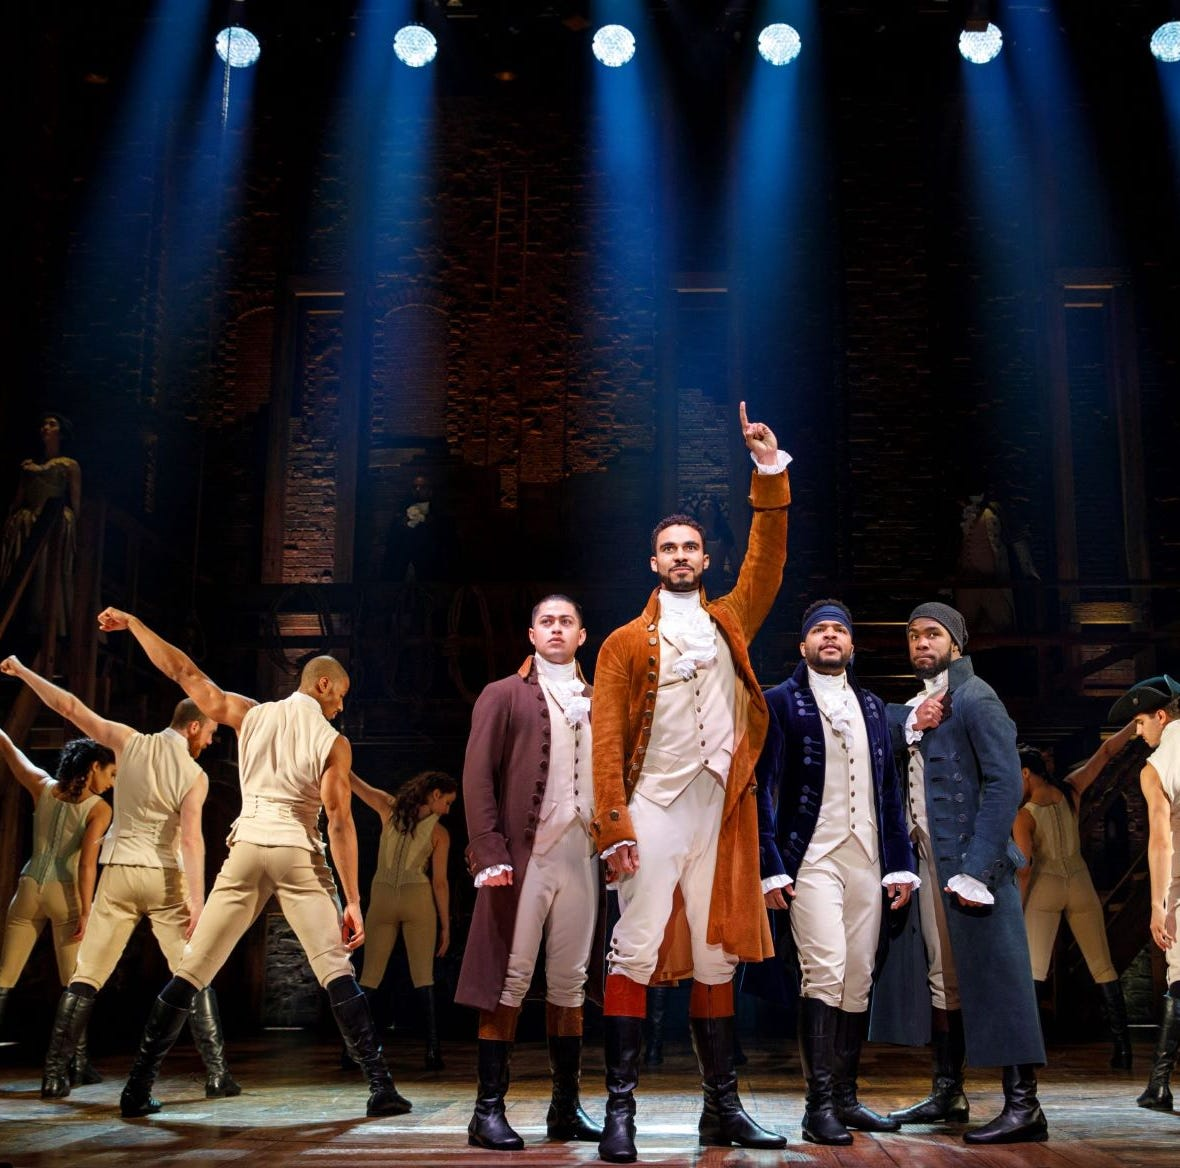 'Hamilton' $10 ticket lottery announced